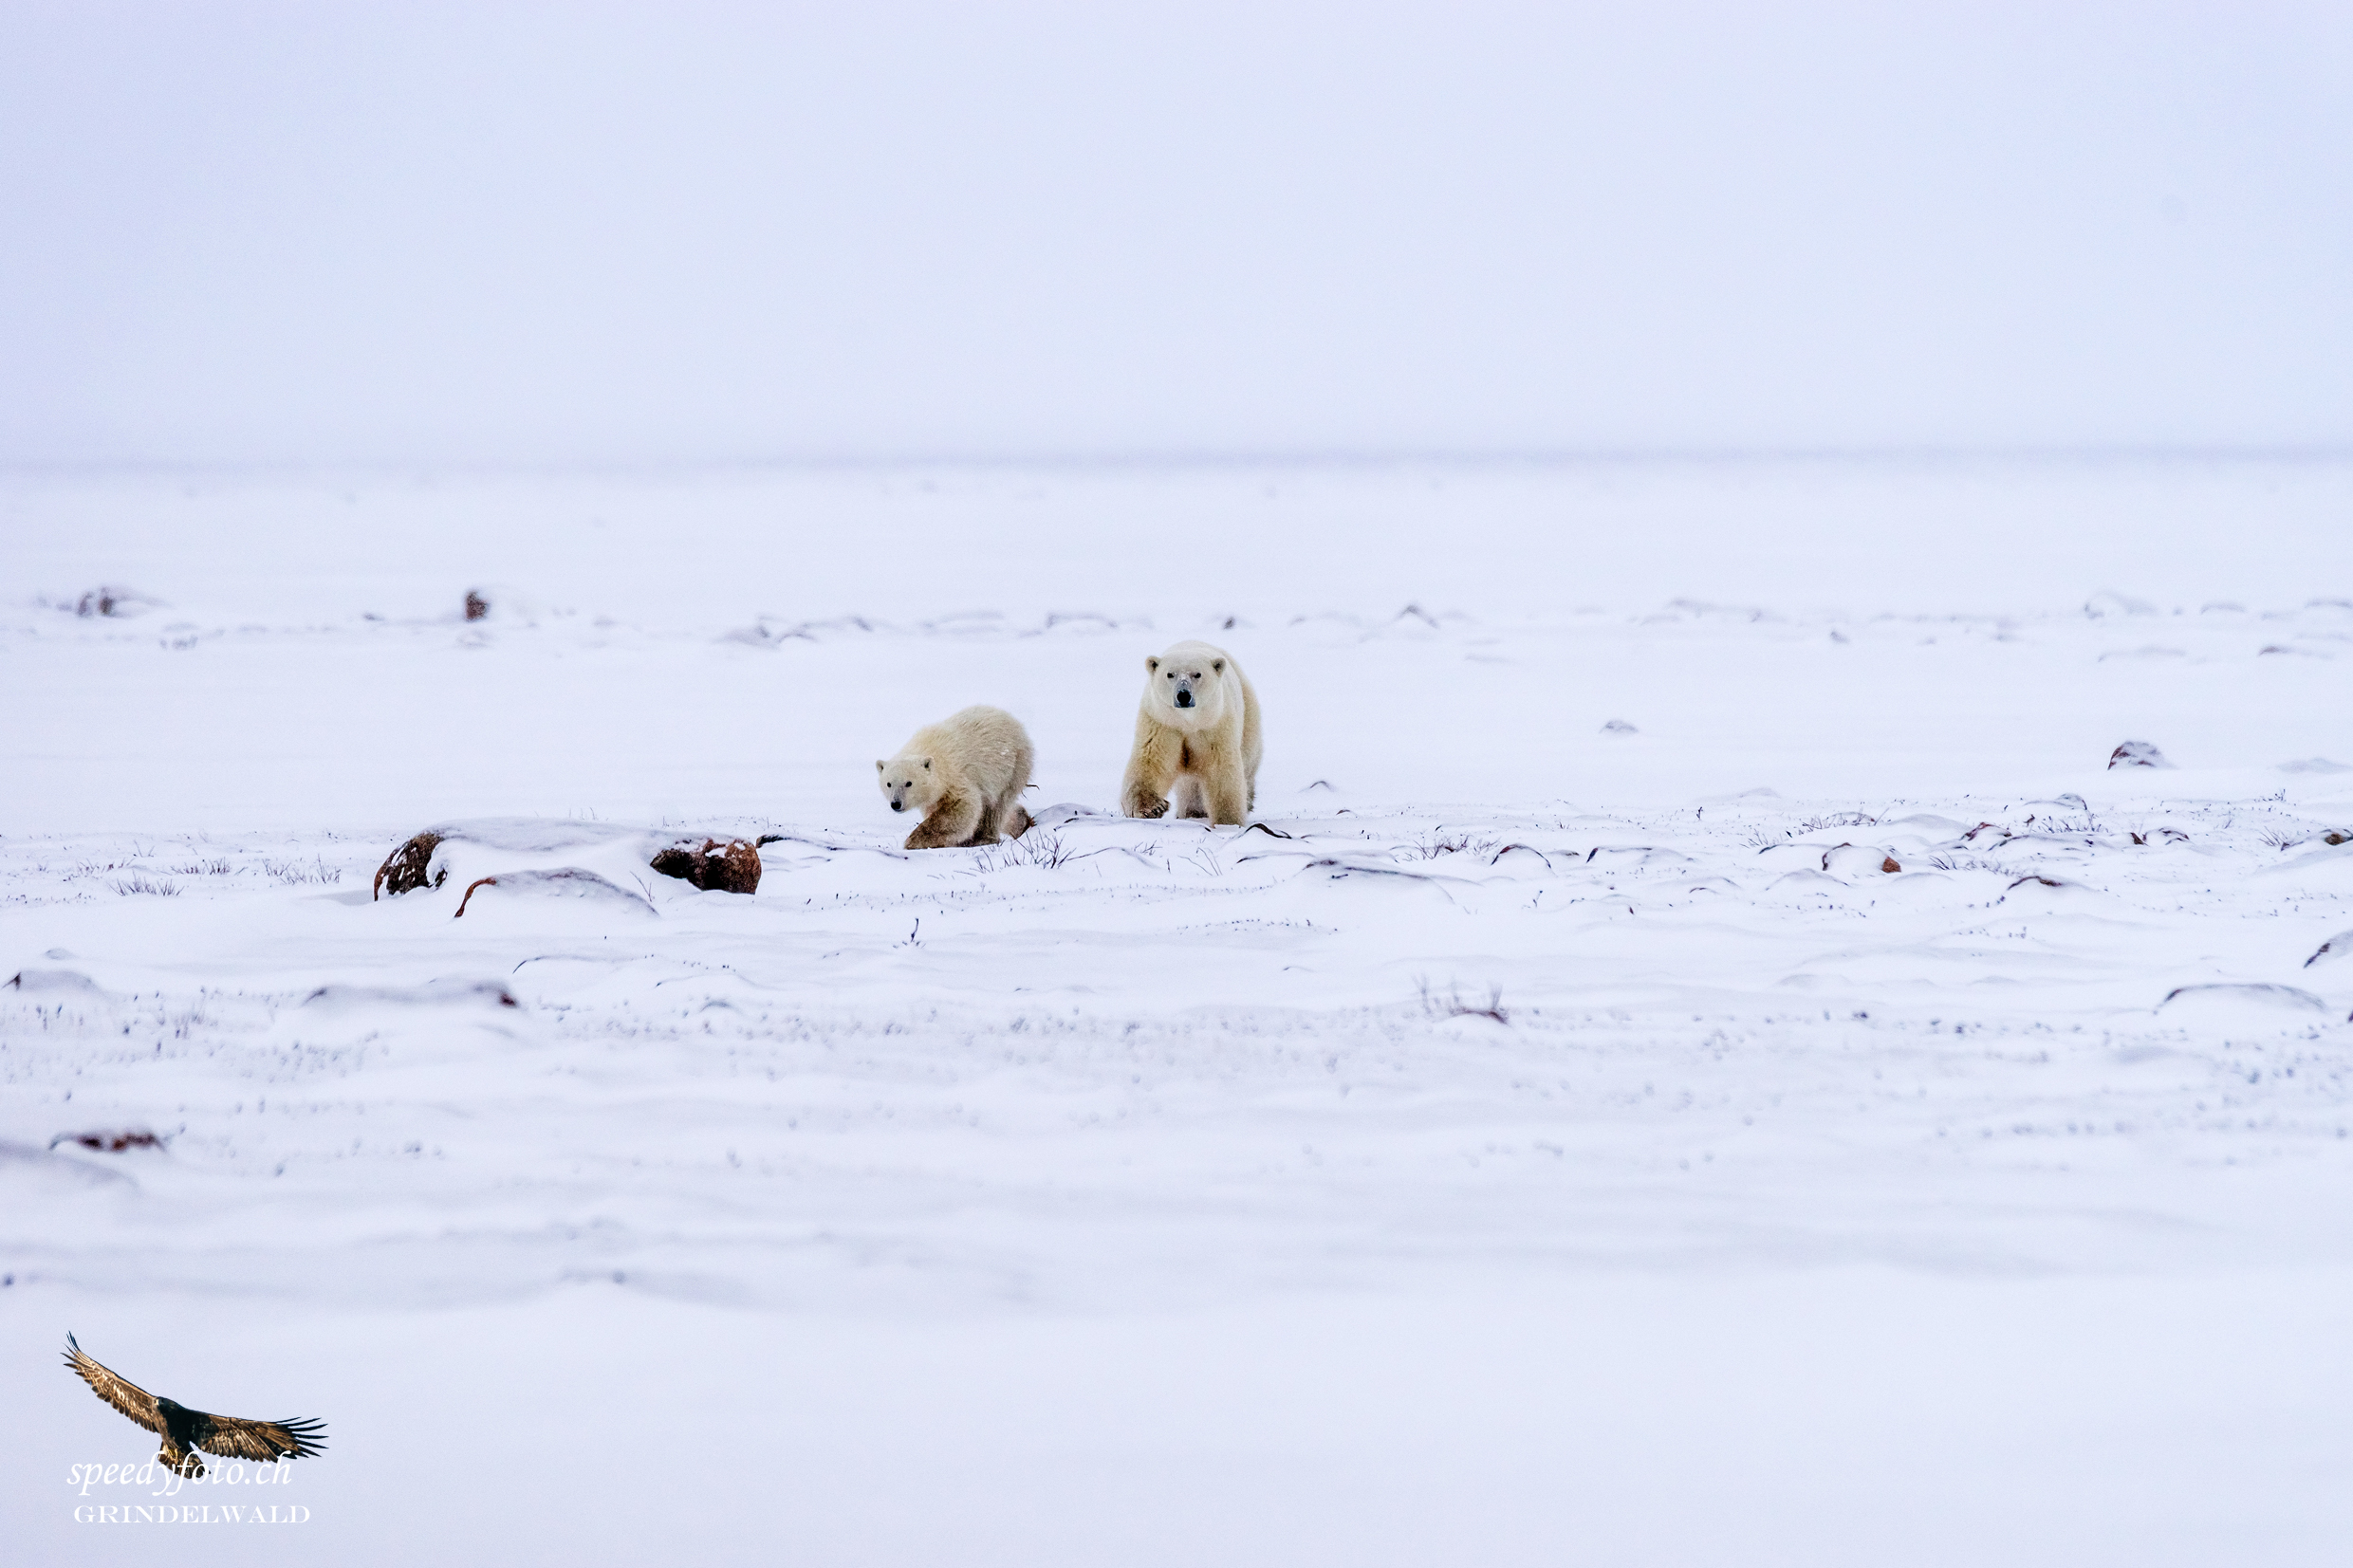 On their way - Arctic Canda